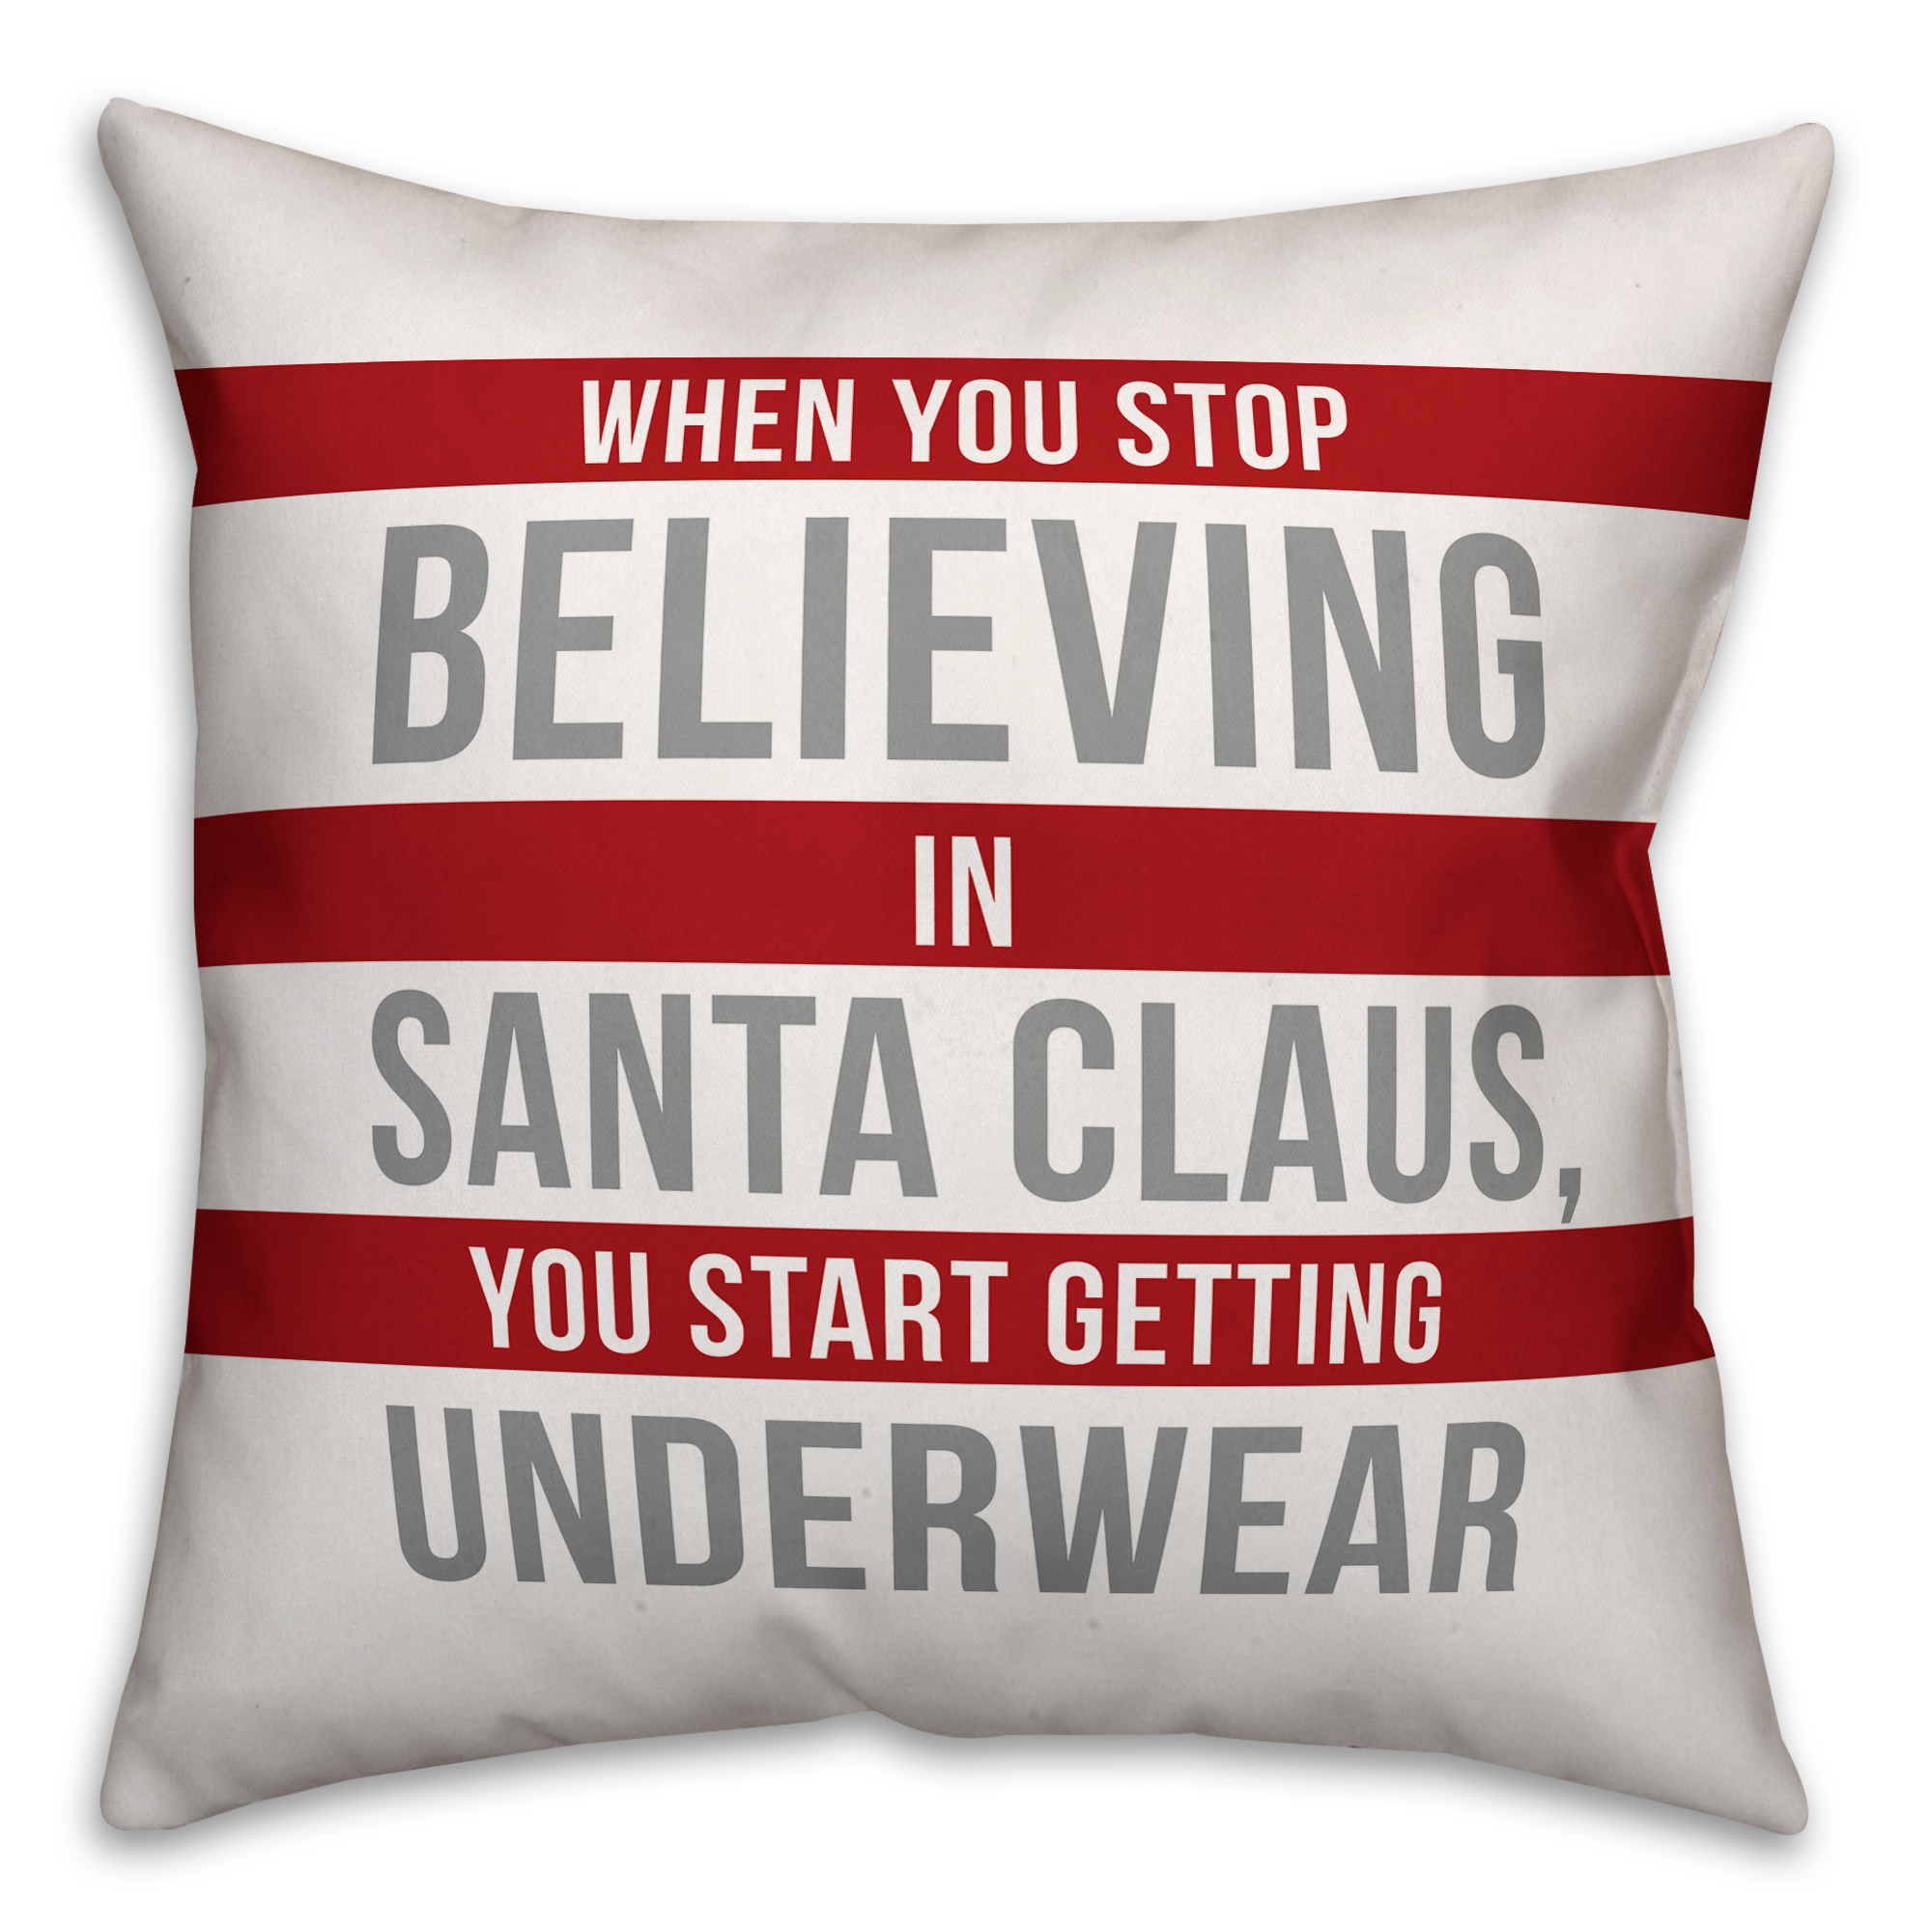 Don't Stop Believing in Santa Claus 18x18 Spun Poly Pillow Cover